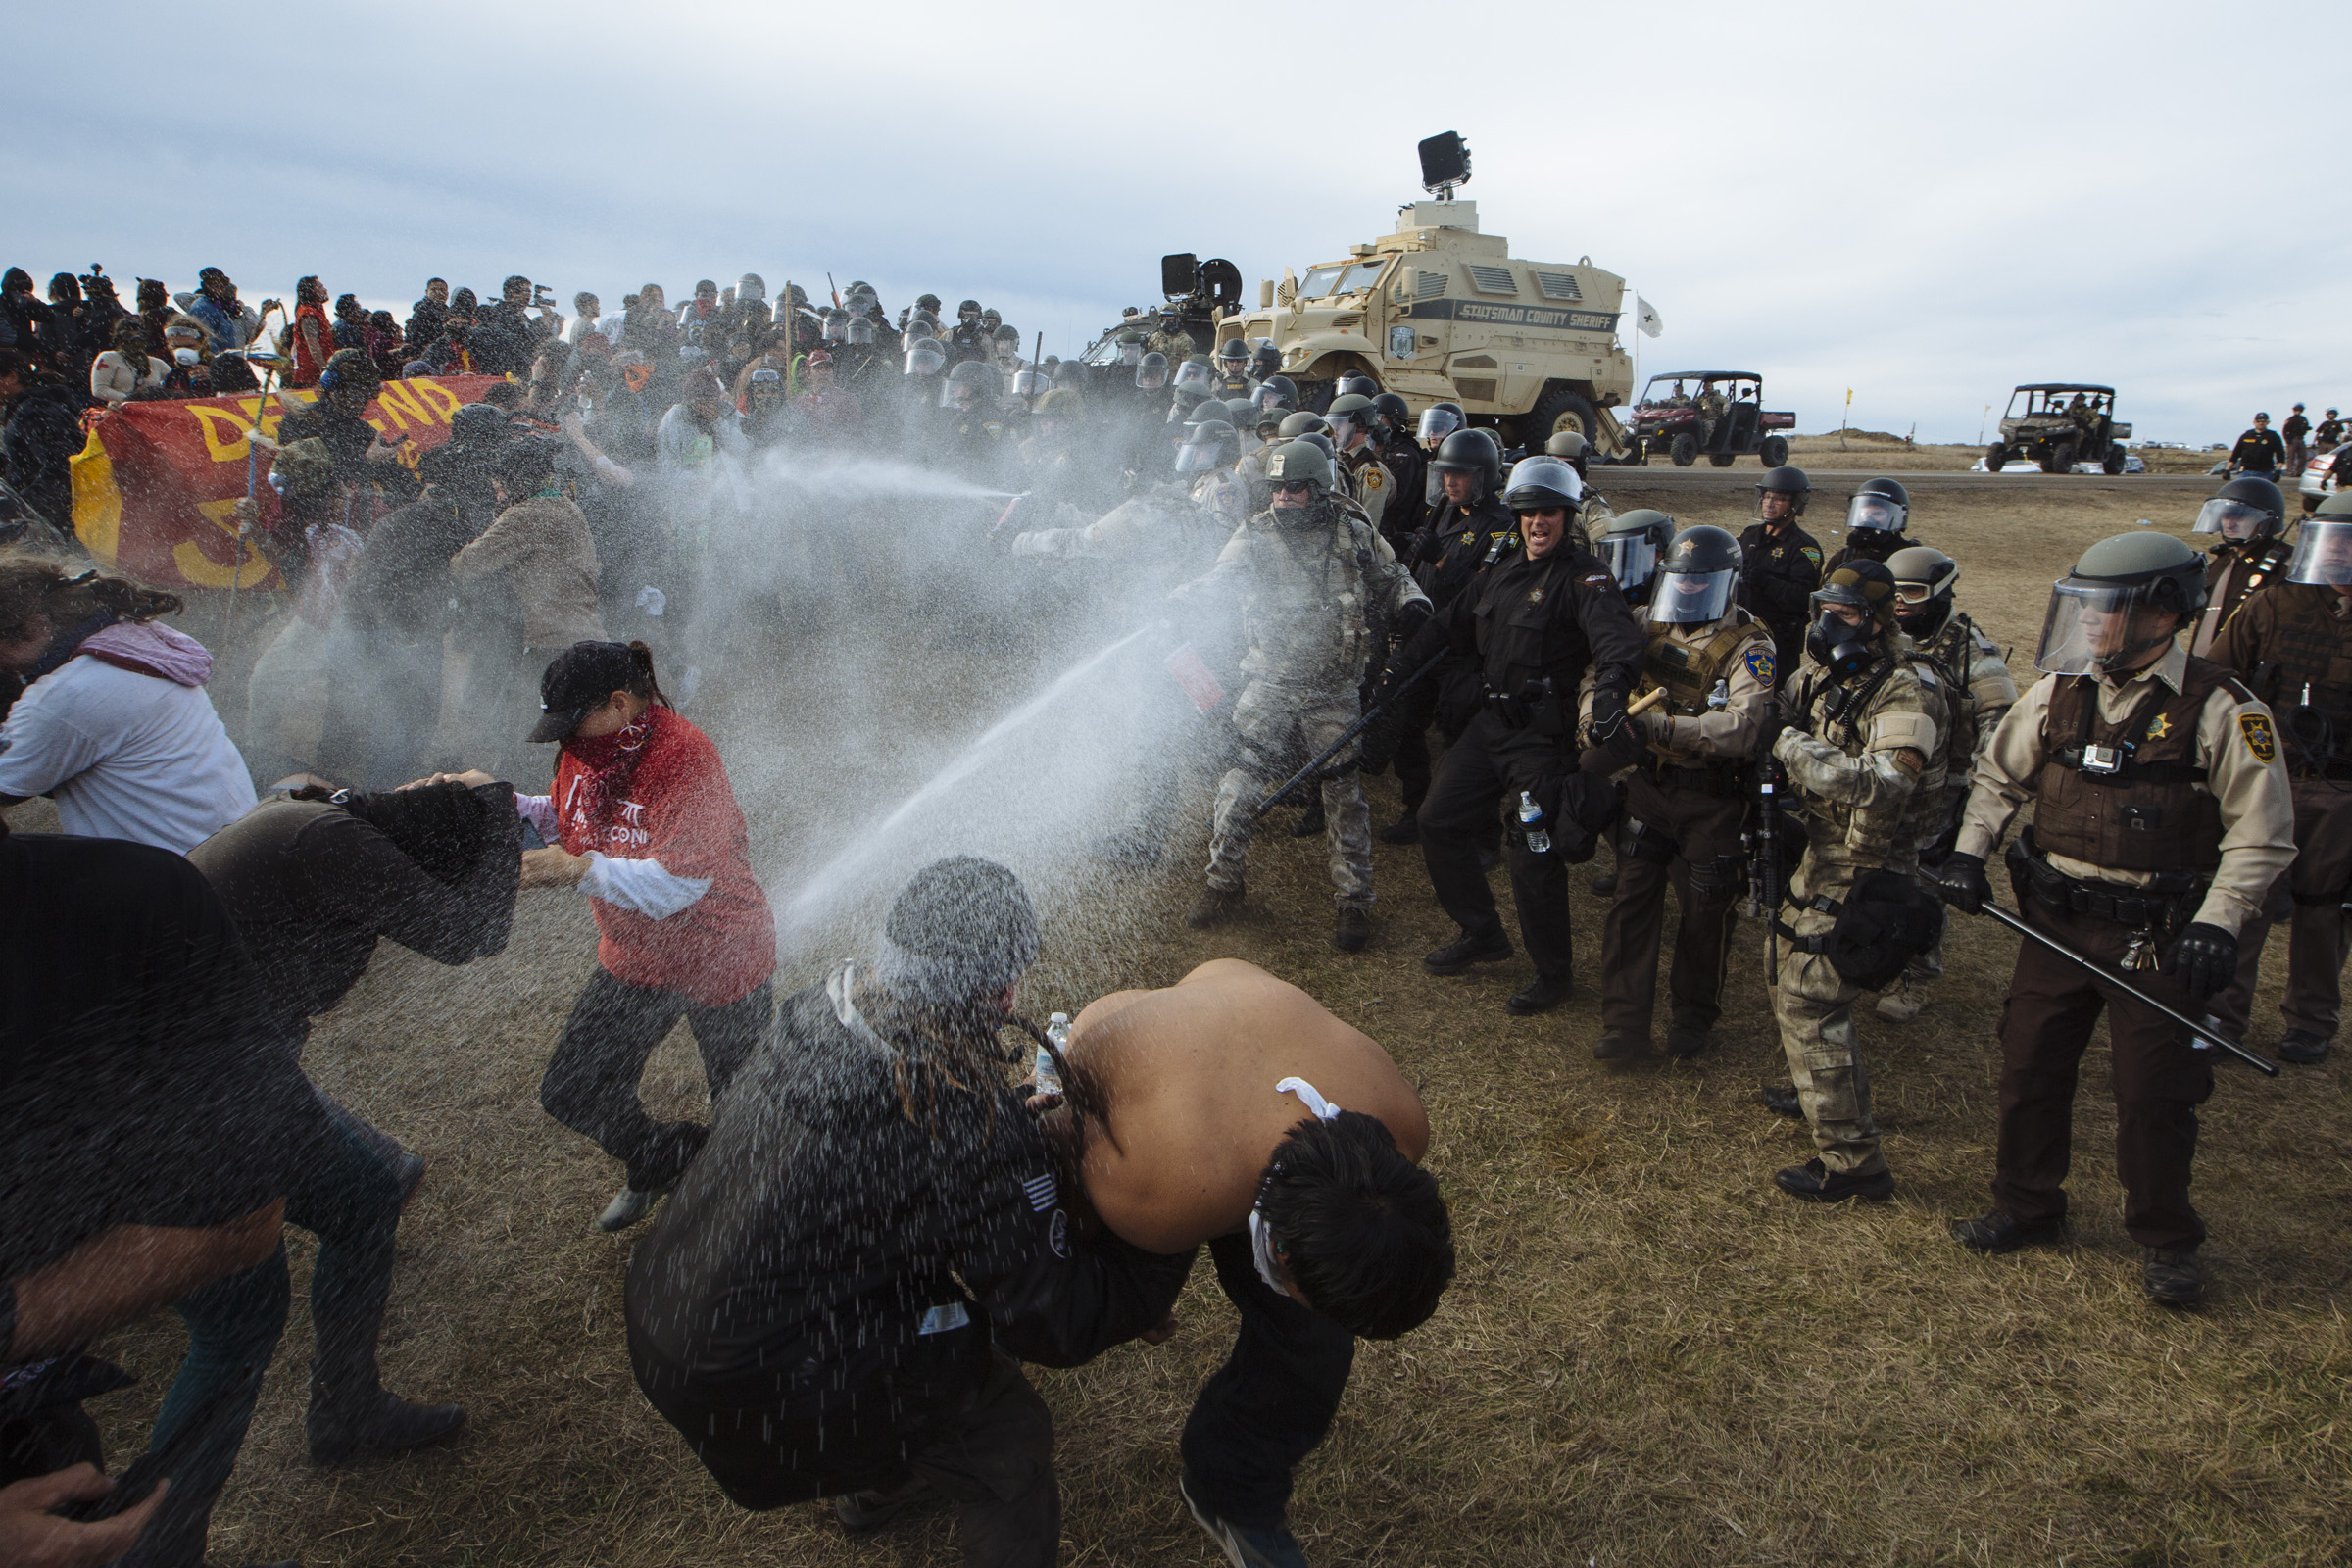 Riot police use pepper spray on a mostly Native American group of peaceful protesters near the Standing Rock Reservation in North Dakota on Thursday, Oct. 27, 2016. Police moved in to clear protestors out of a camp set up directly in the path of the Dakota Access Pipeline. (Photo by Angus Mordant/GroundTruth)